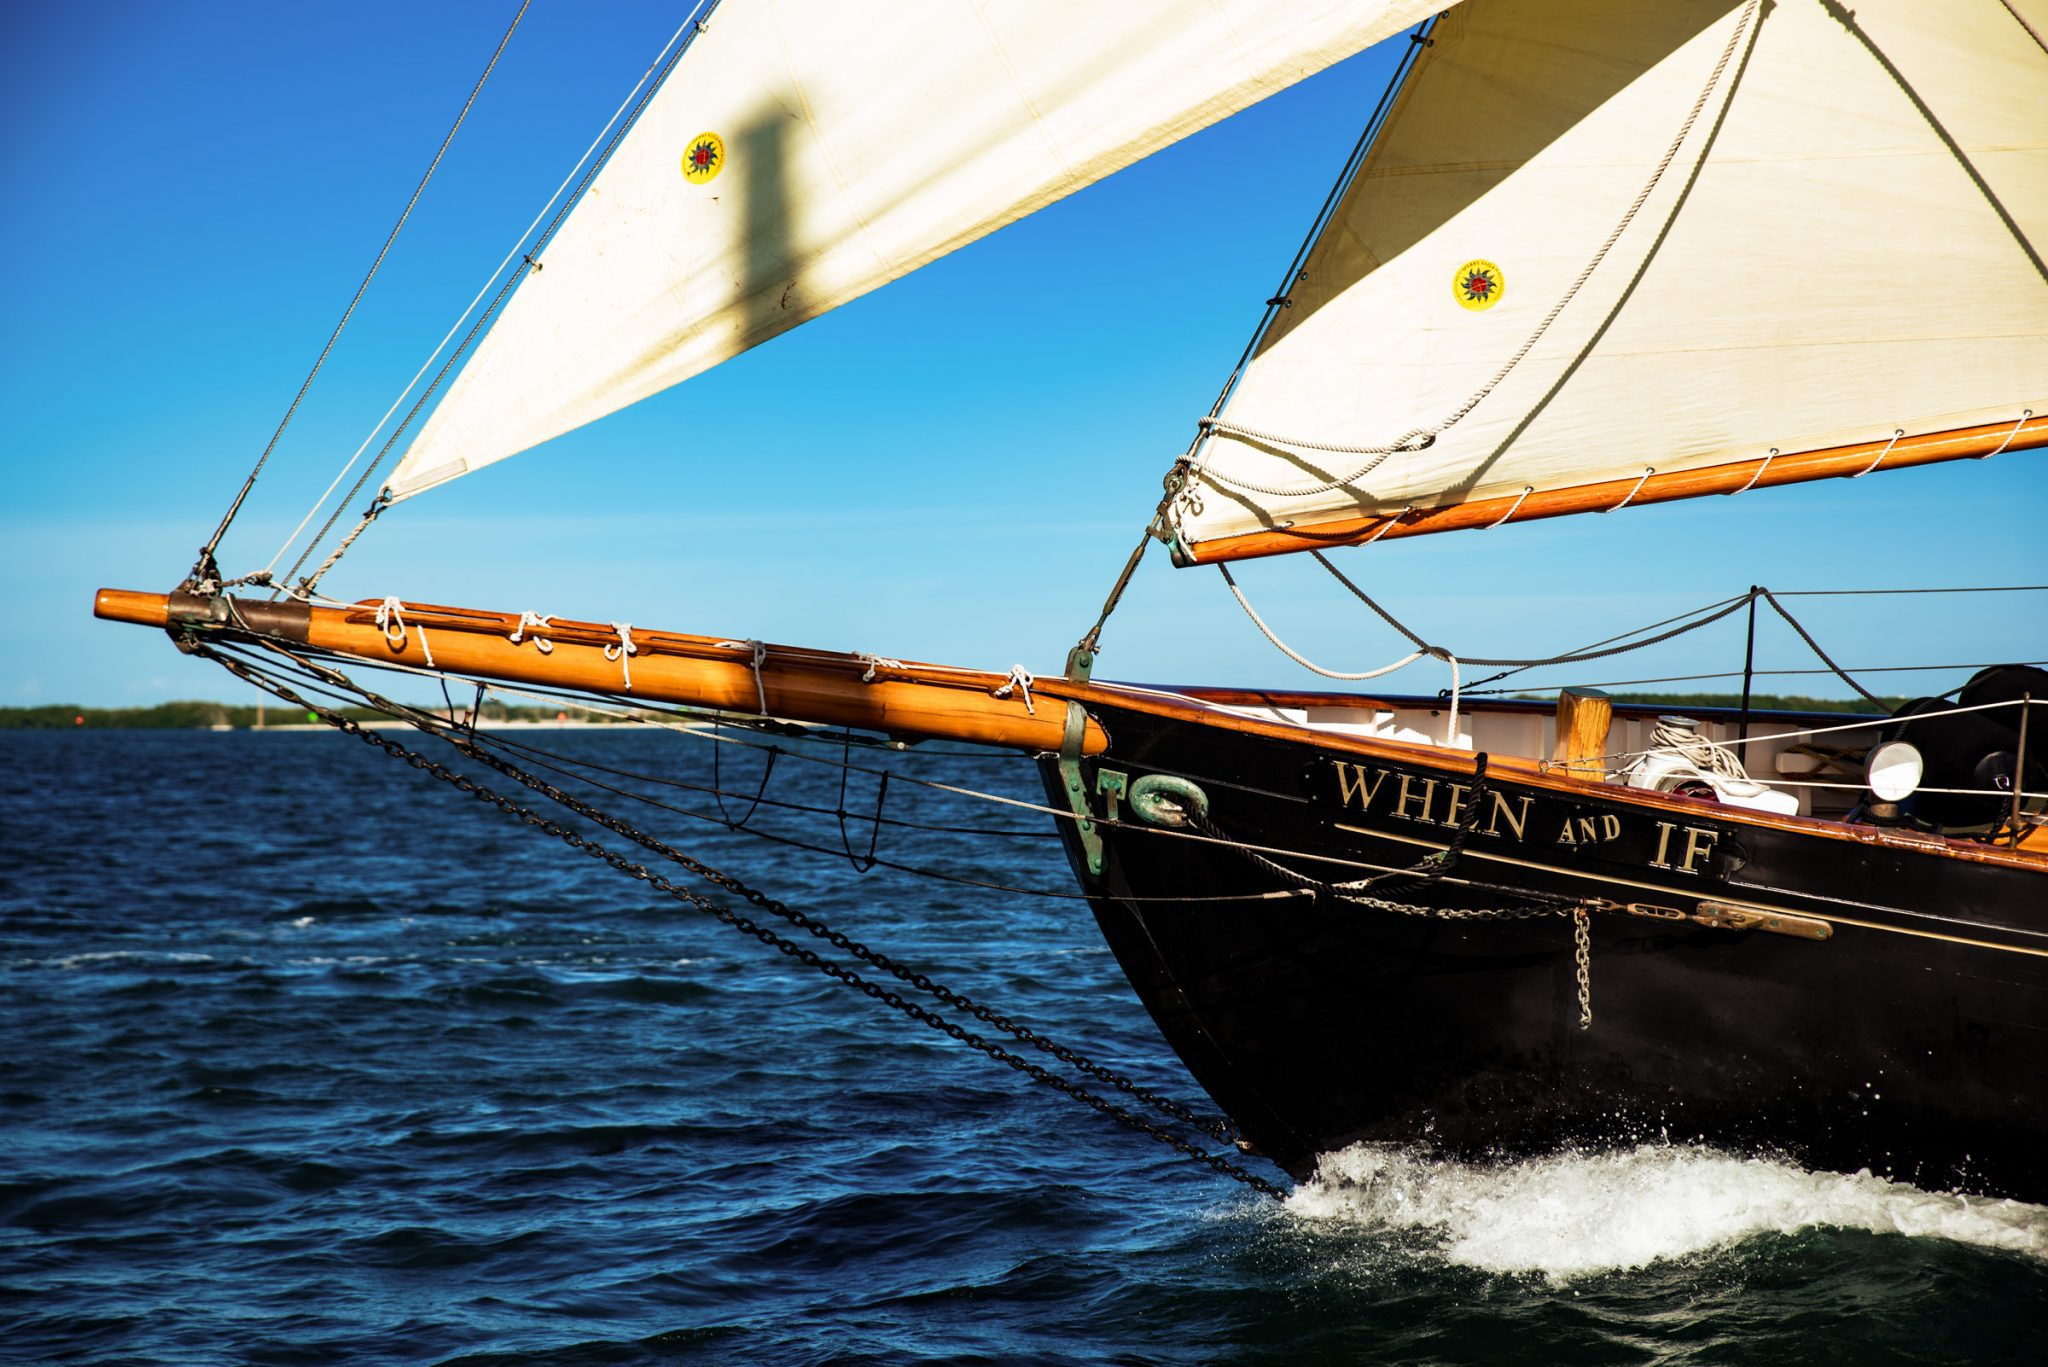 Bow of a sailboat as it sails in the ocean for commercial photography